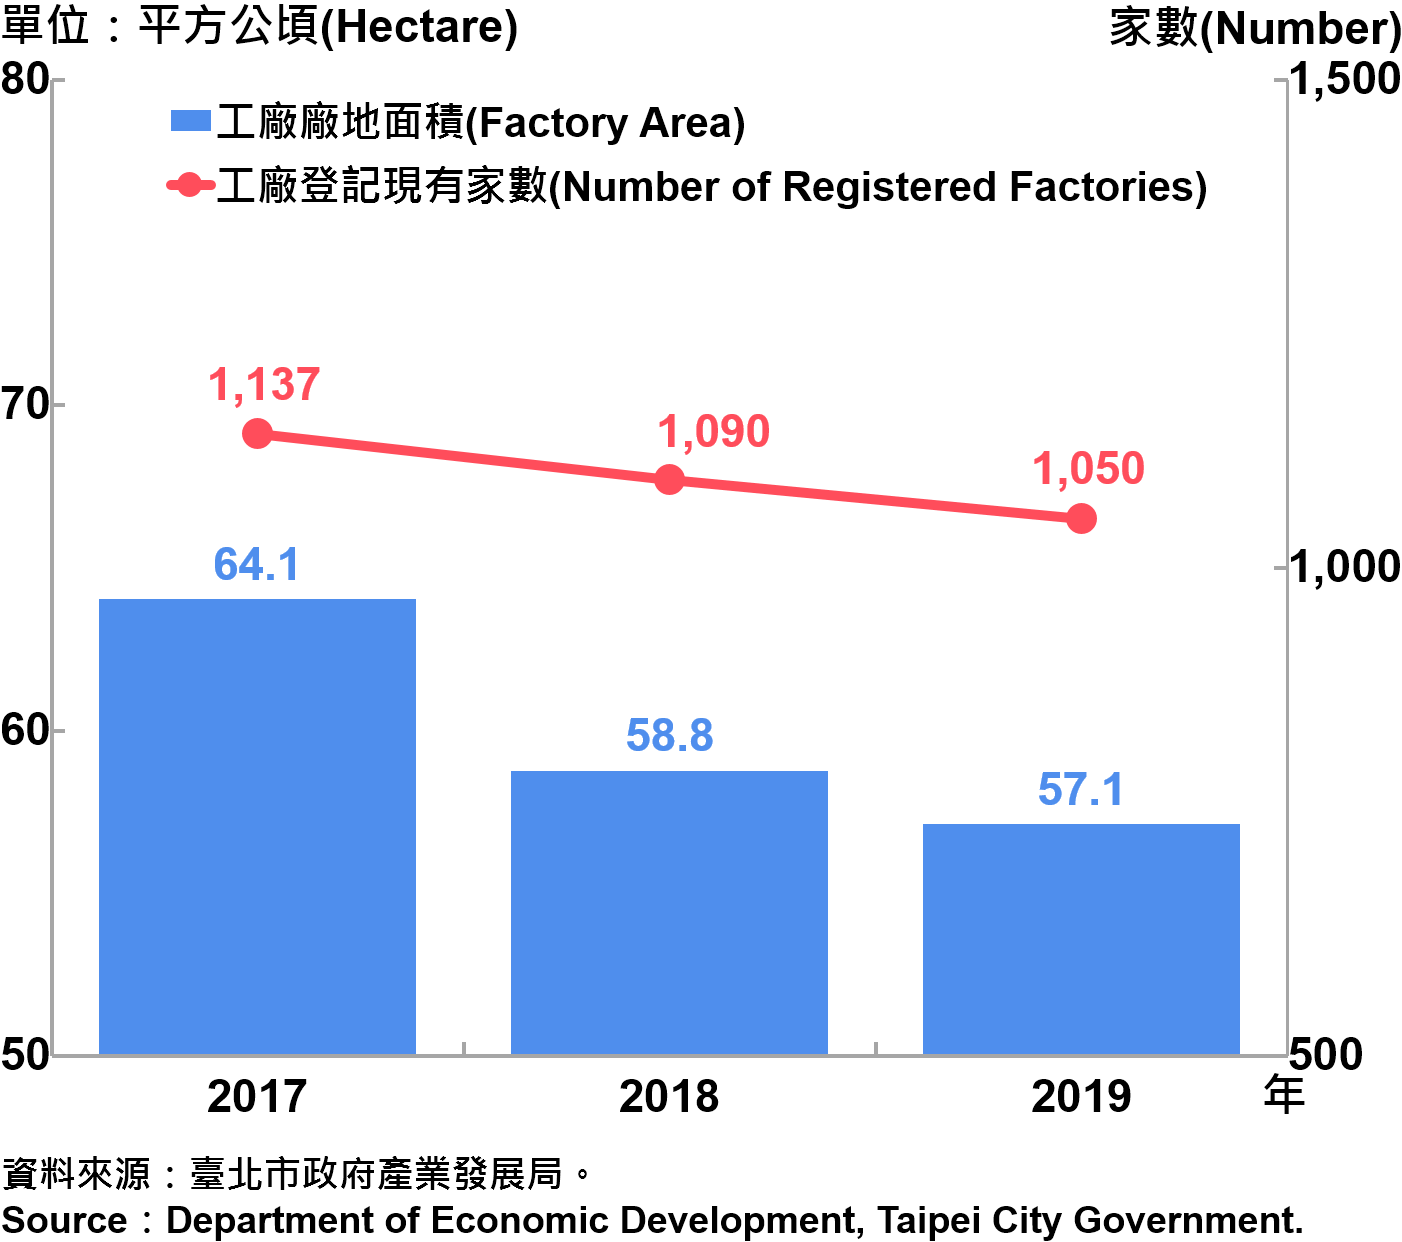 臺北市工廠登記家數及廠地面積—2019 Factory Registration and Factory Area in Taipei City—2019